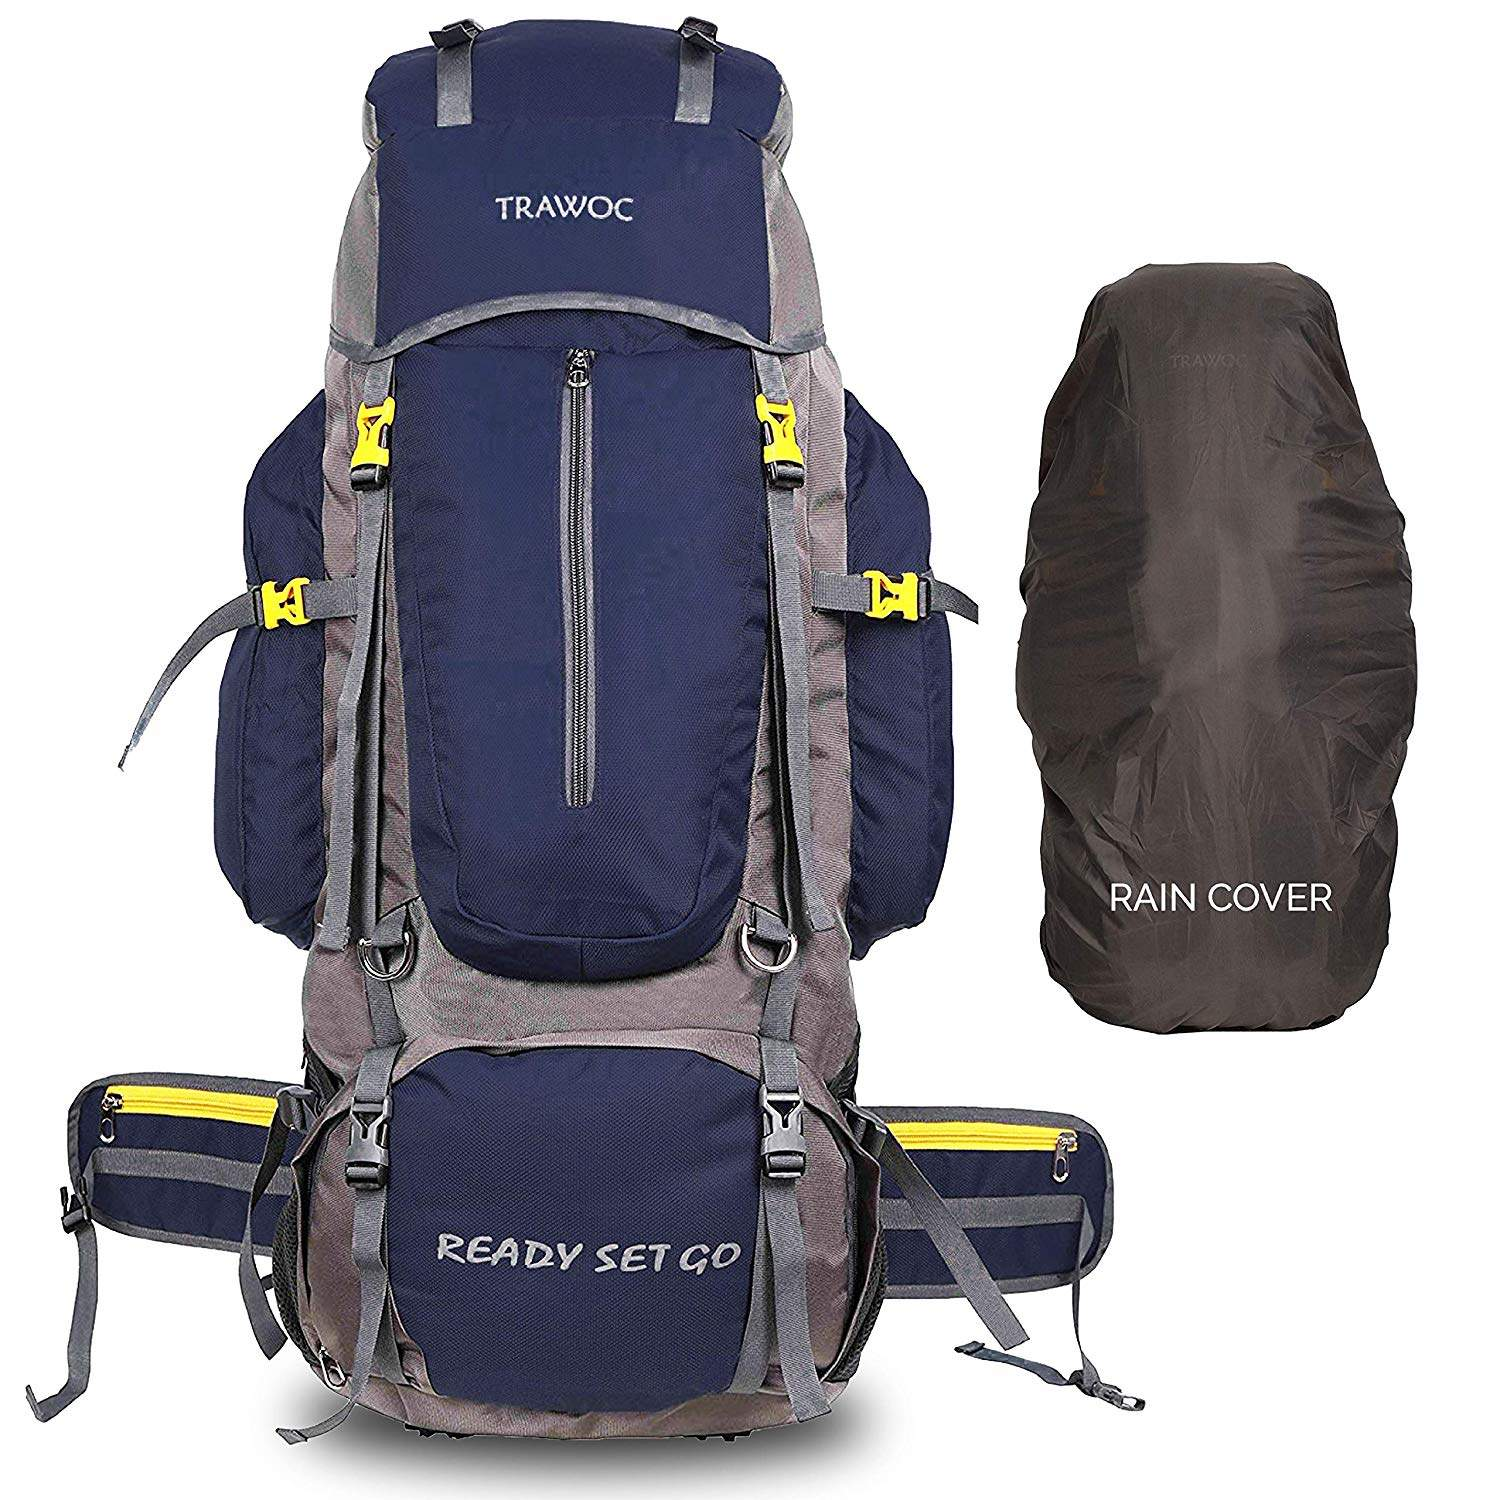 Buy Trawoc 80 Liter Travel Backpack For Outdoor Sport Camp Hiking Trekking Bag Camping Rucksack Bhk001 Navy Blue Features Price Reviews Online In India Justdial